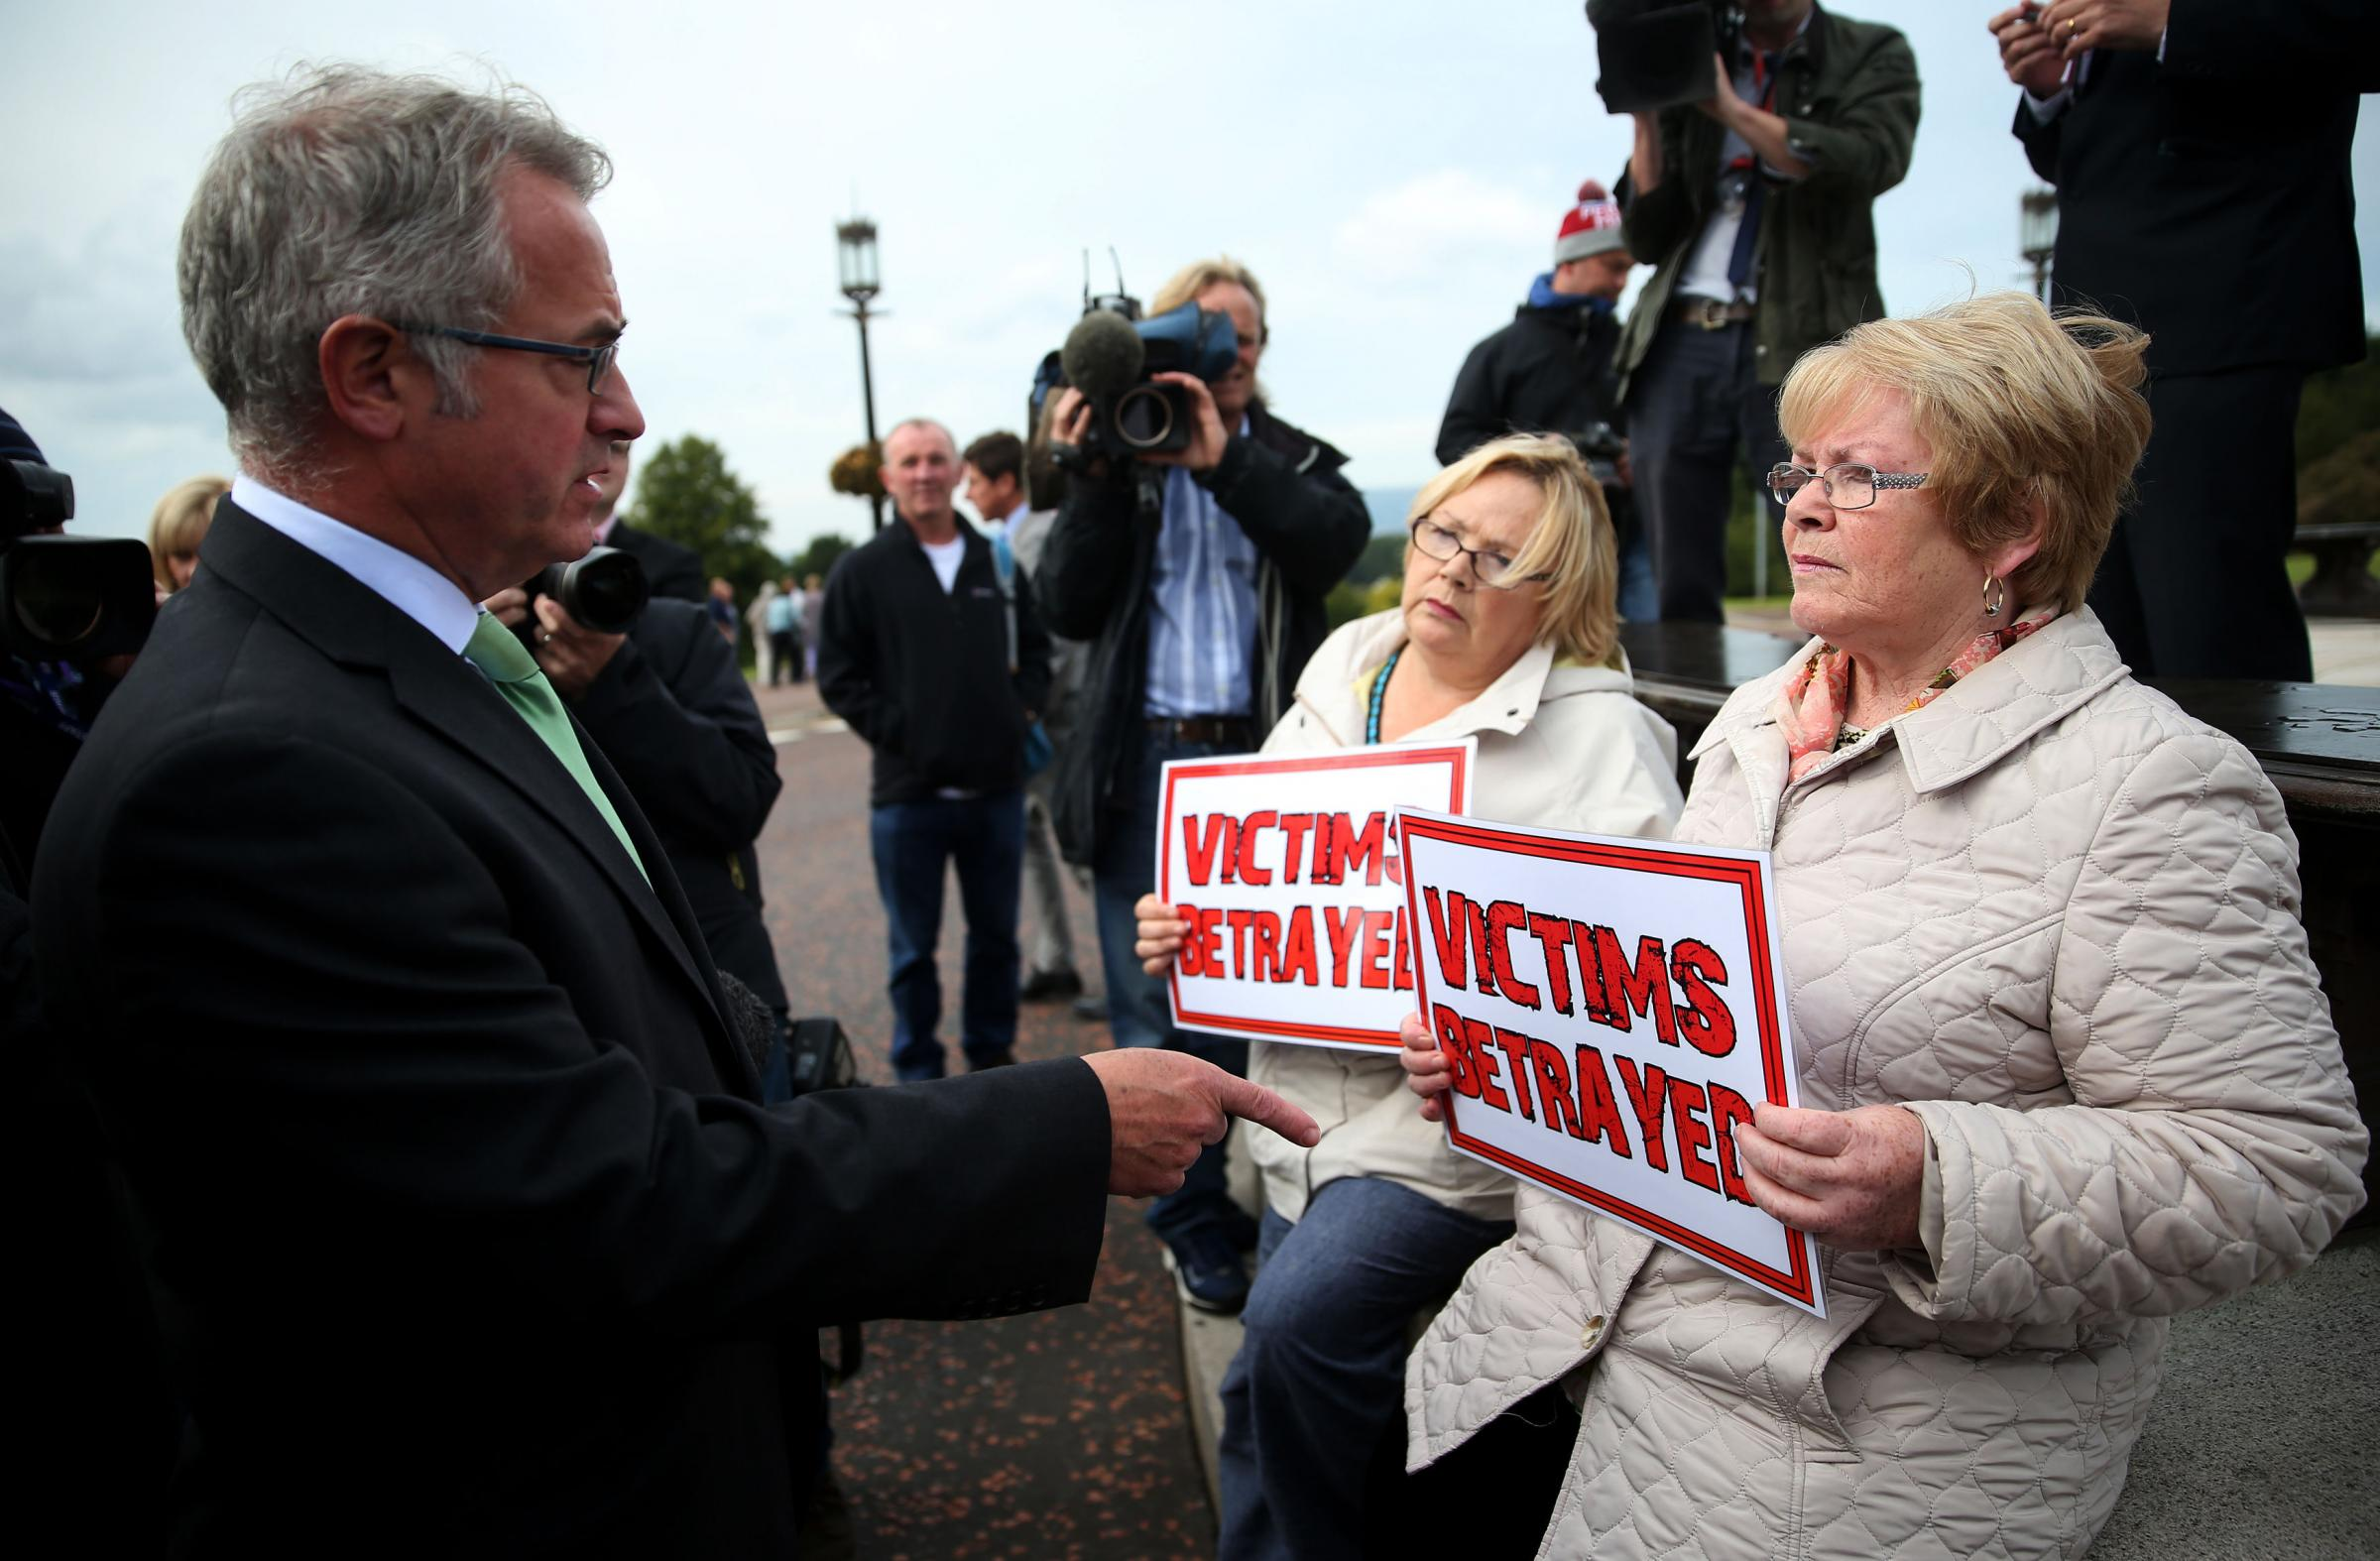 File photo dated 14/09/2015 of SDLP's Alex Attwood (left) speaking to Kate Nash (right), whose brother William was killed by British soldiers on Bloody Sunday in 1972, she has welcomed the development of a former British soldier being questioned by de